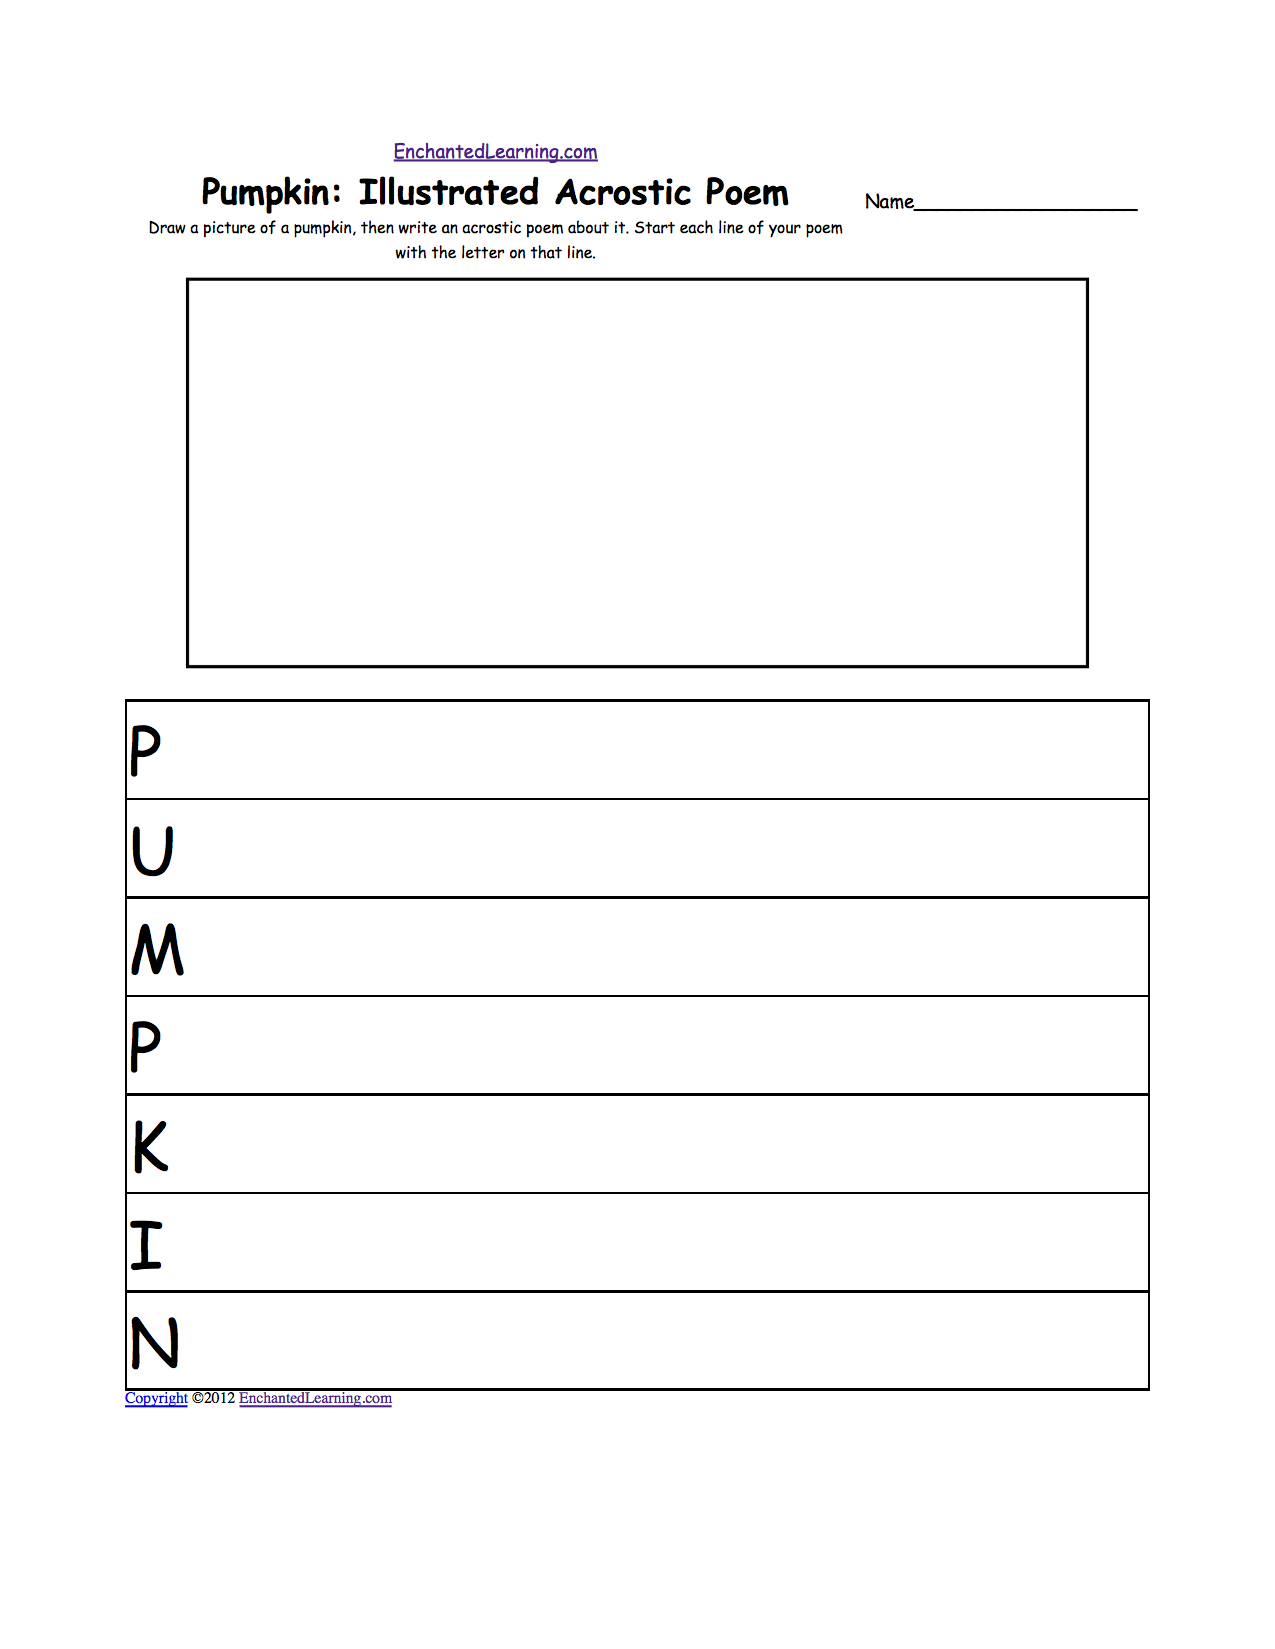 Worksheets Poetry Worksheets acrostic poems plus generate your own poetry worksheets enchantedlearning com